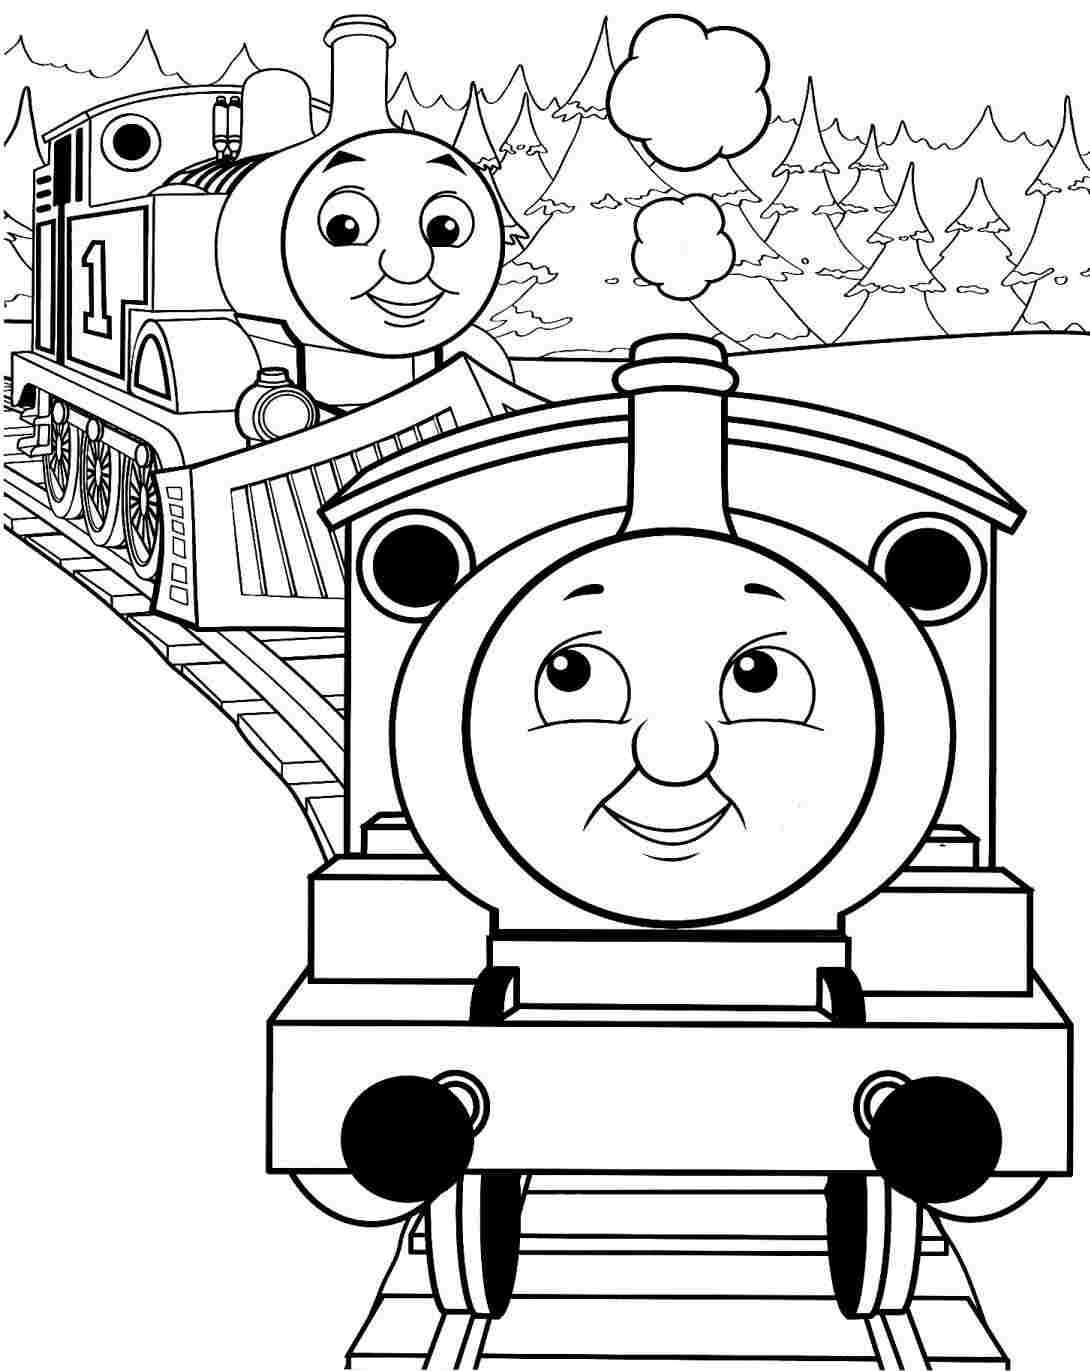 thomas train coloring pages - photo#5